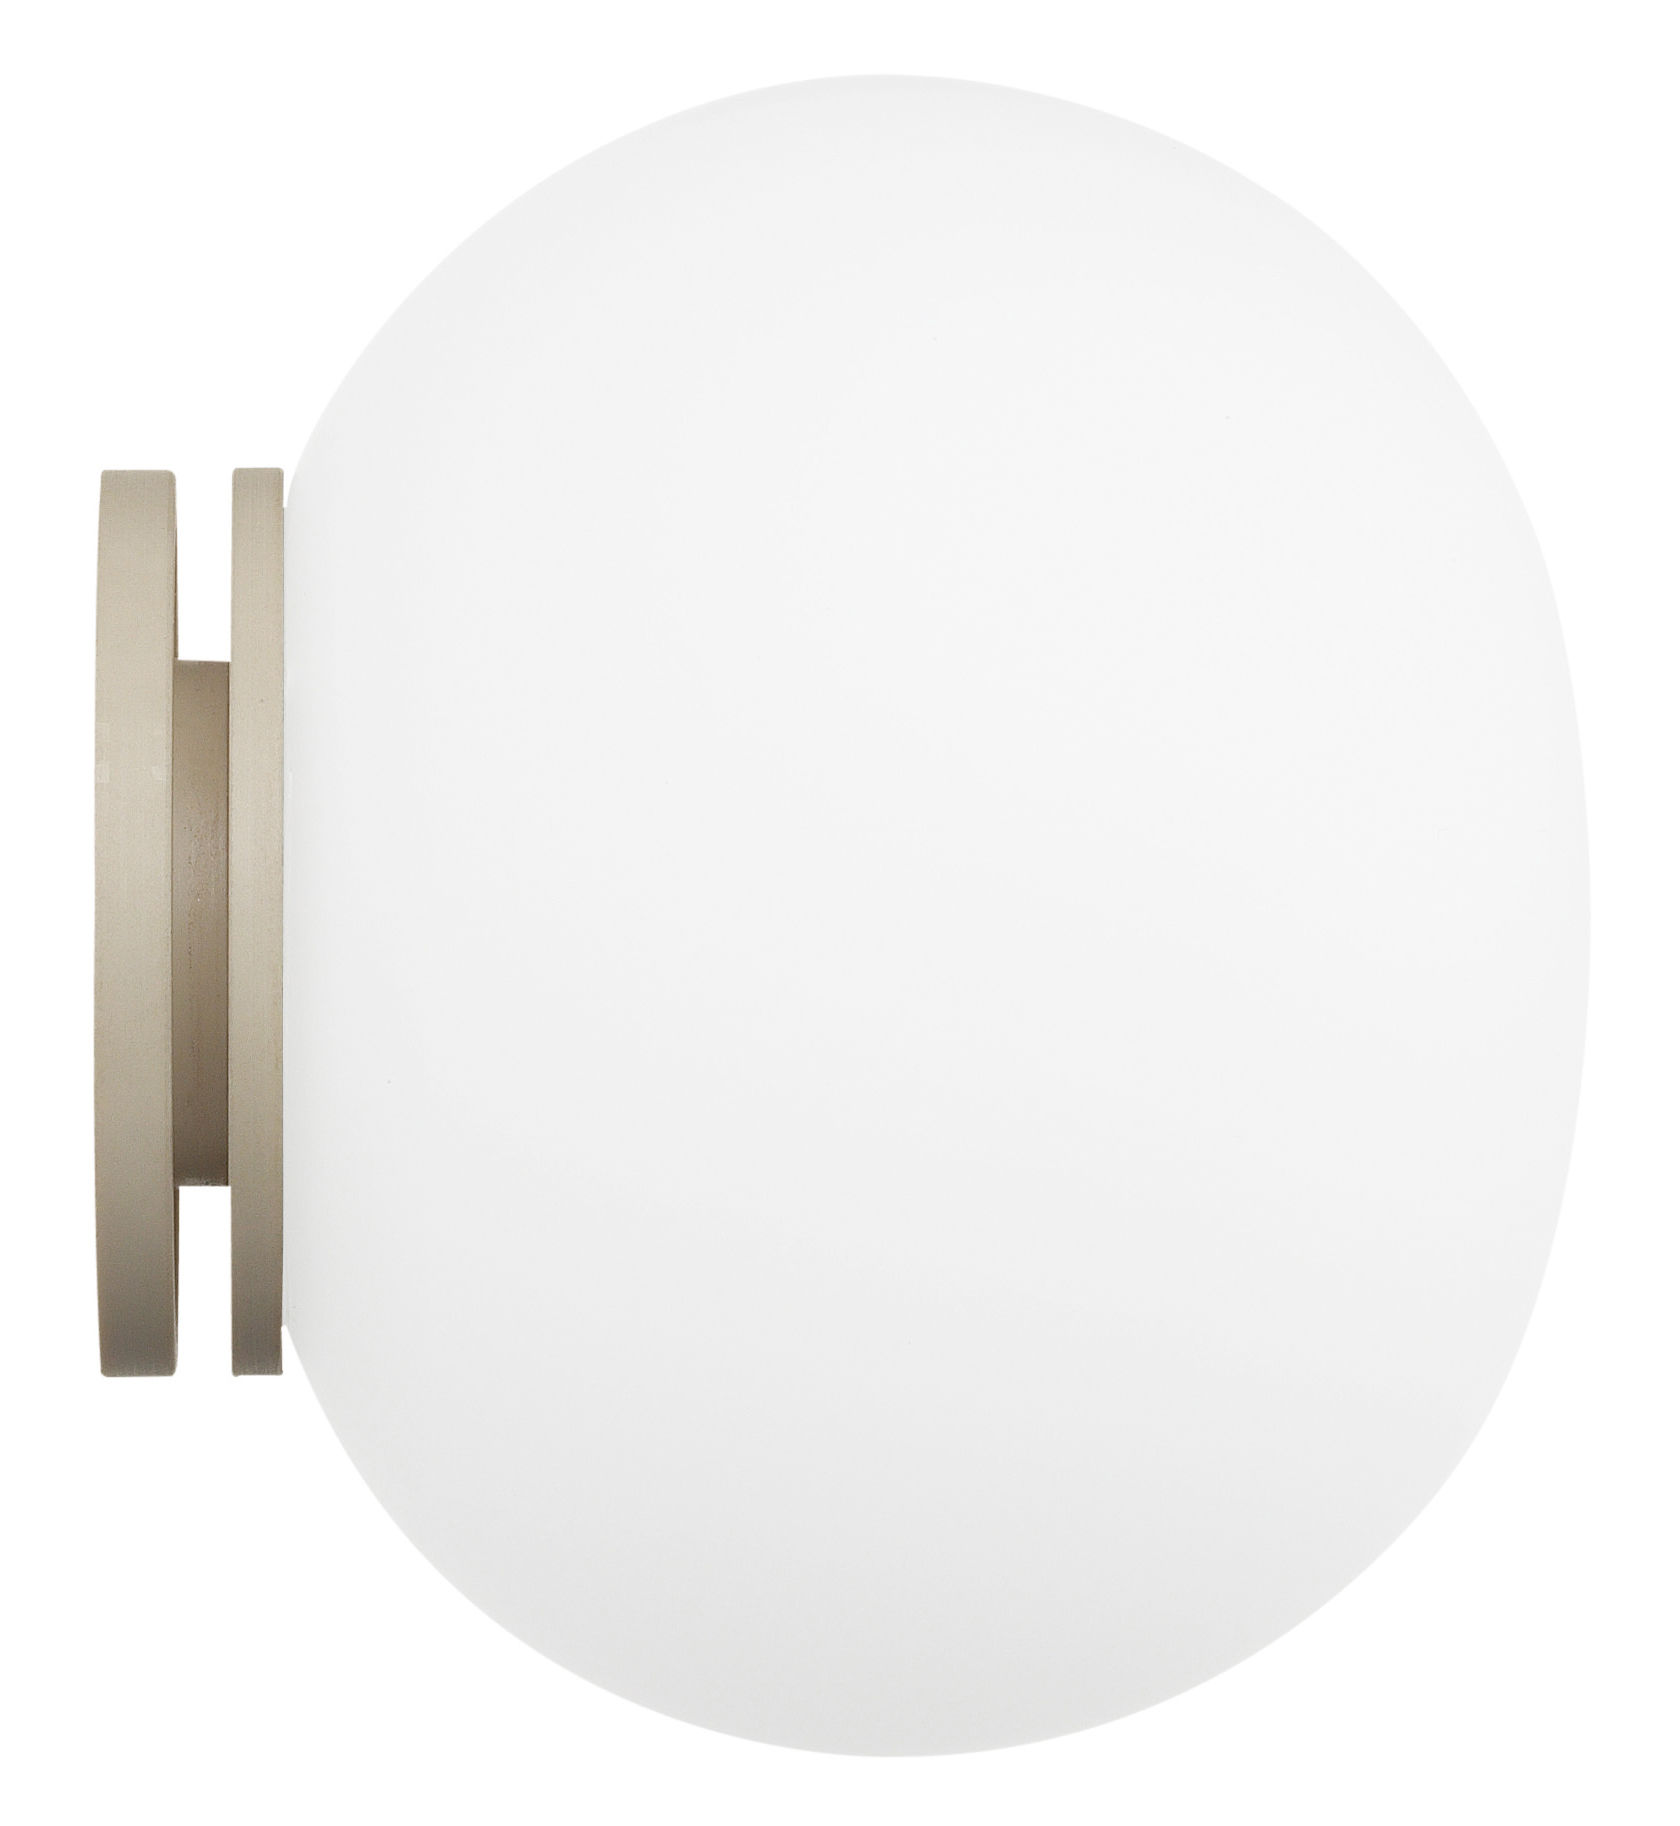 mini glo ball wall light ceiling light white by flos. Black Bedroom Furniture Sets. Home Design Ideas